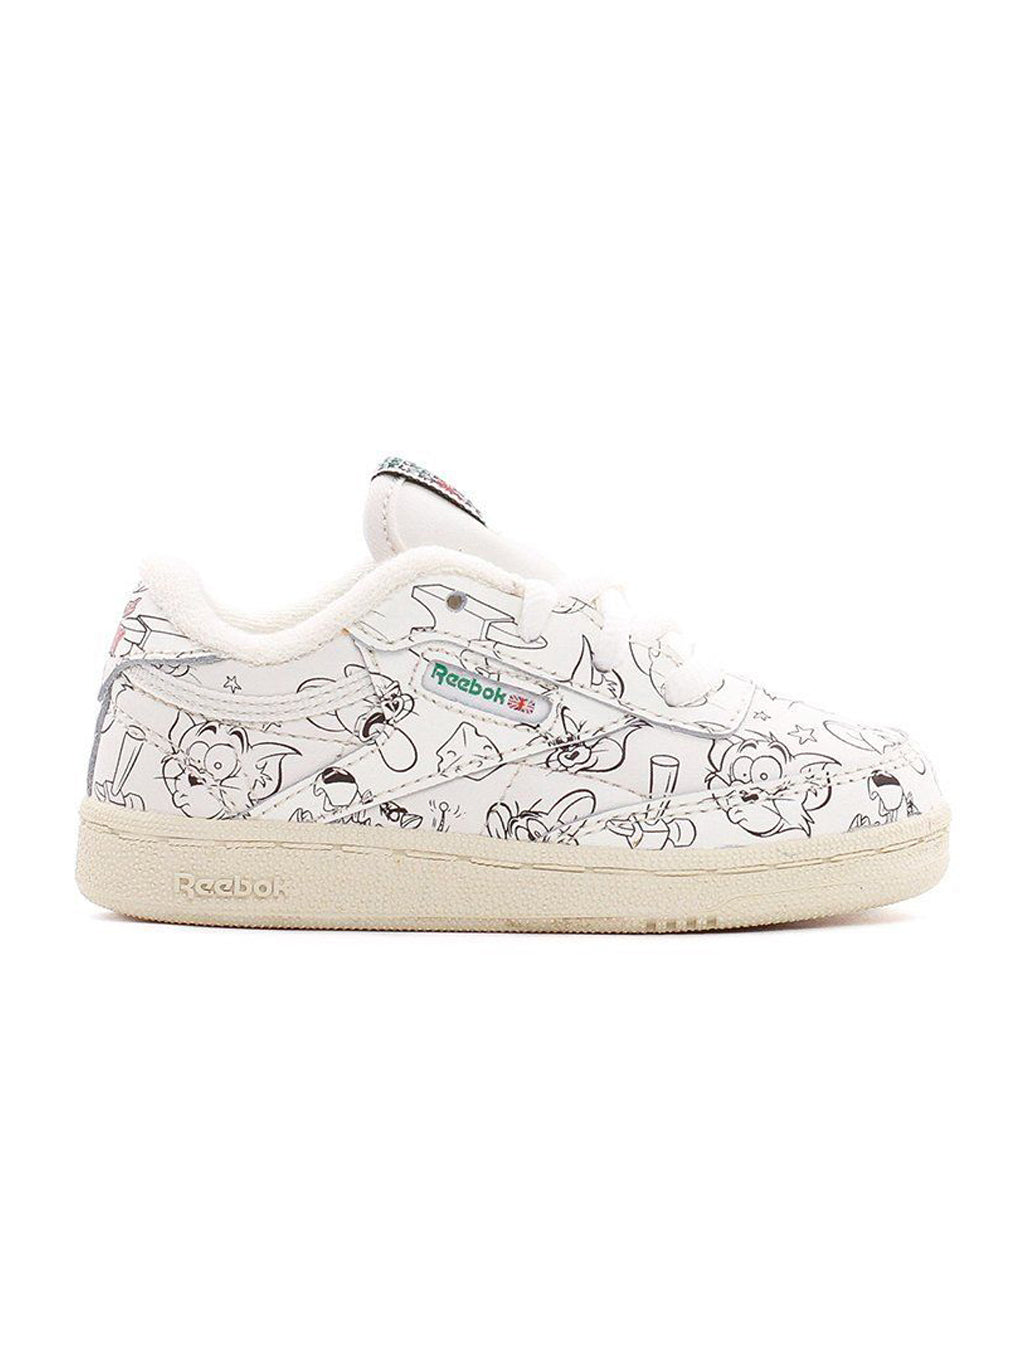 White & Green Tom and Jerry Club C 85 Mu Preschool Shoes